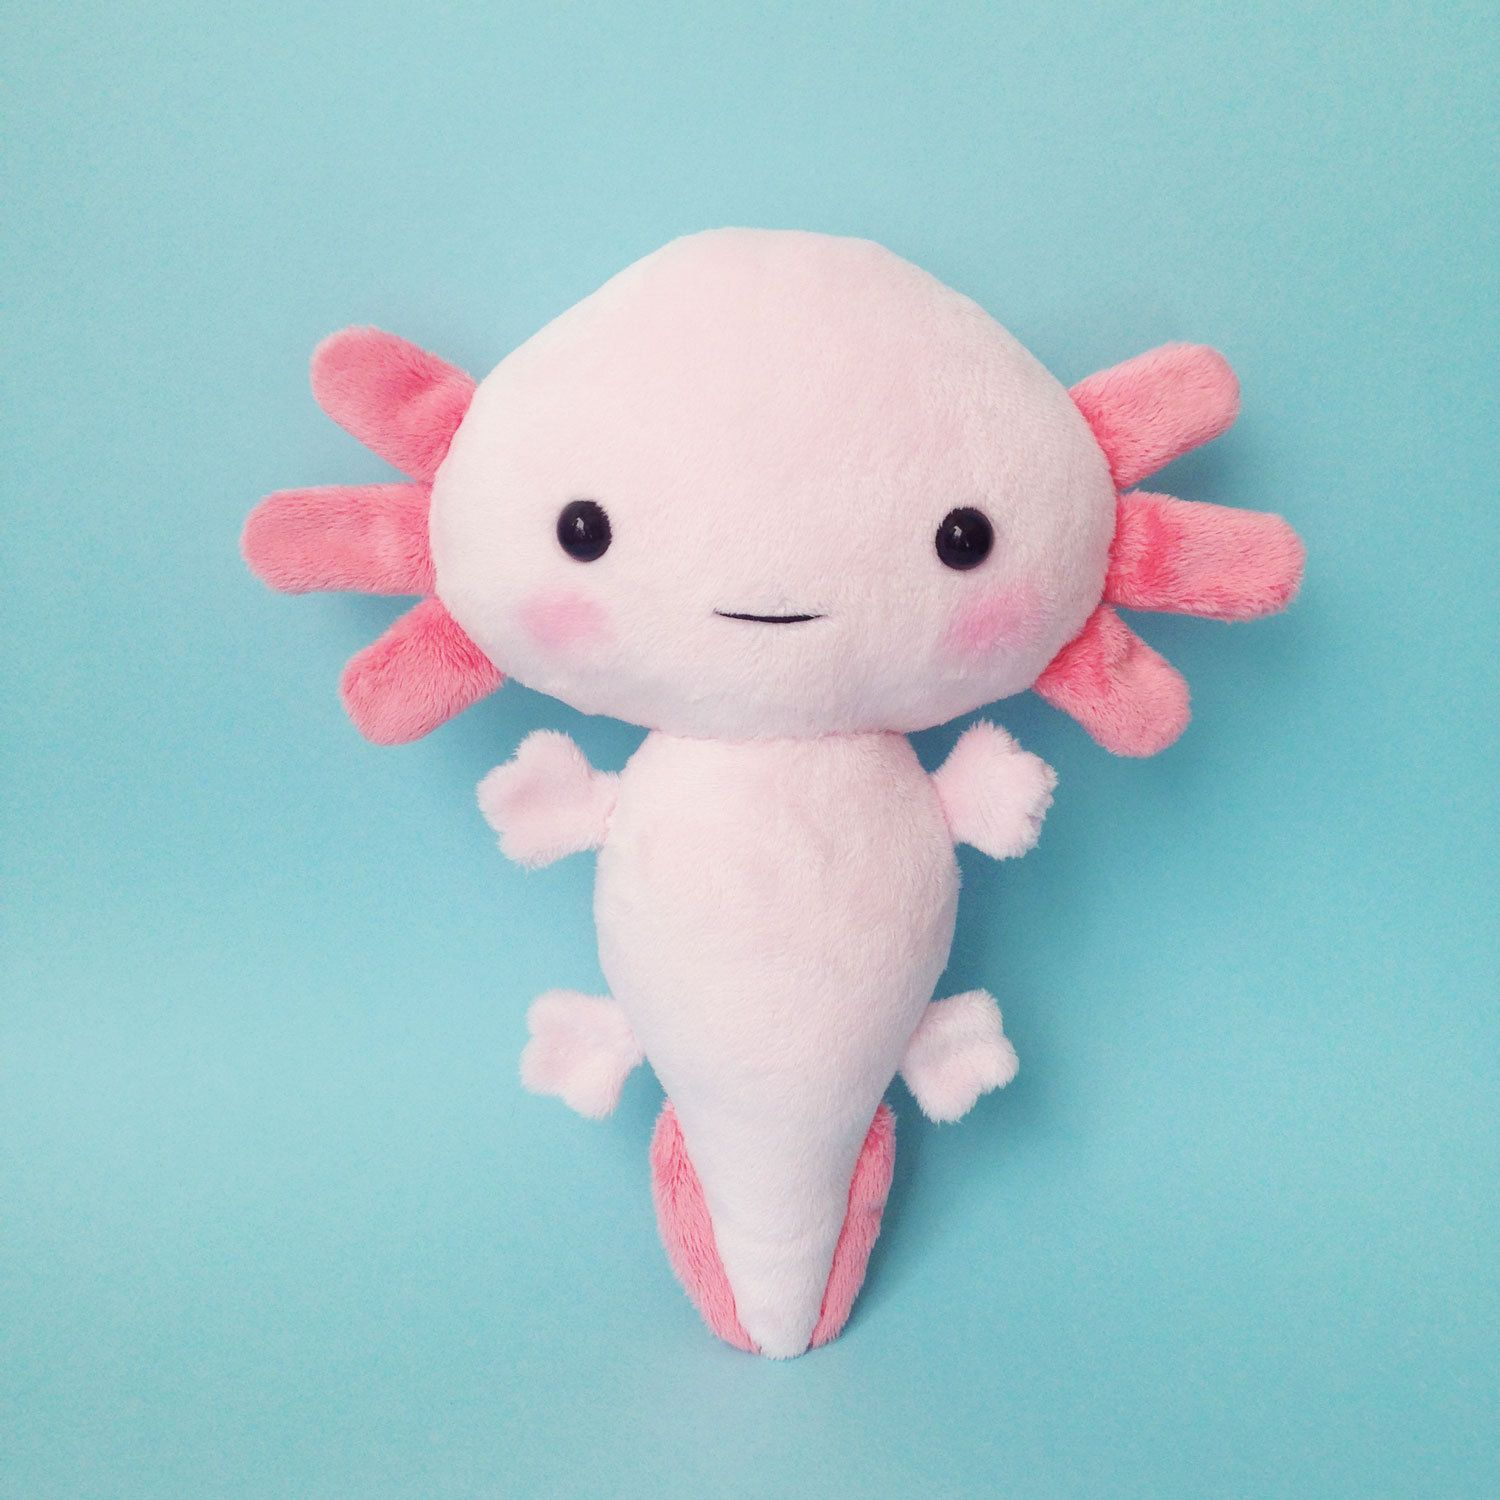 Axolotl plush toy | Plushies & More Cute Toys! | Pinterest ...